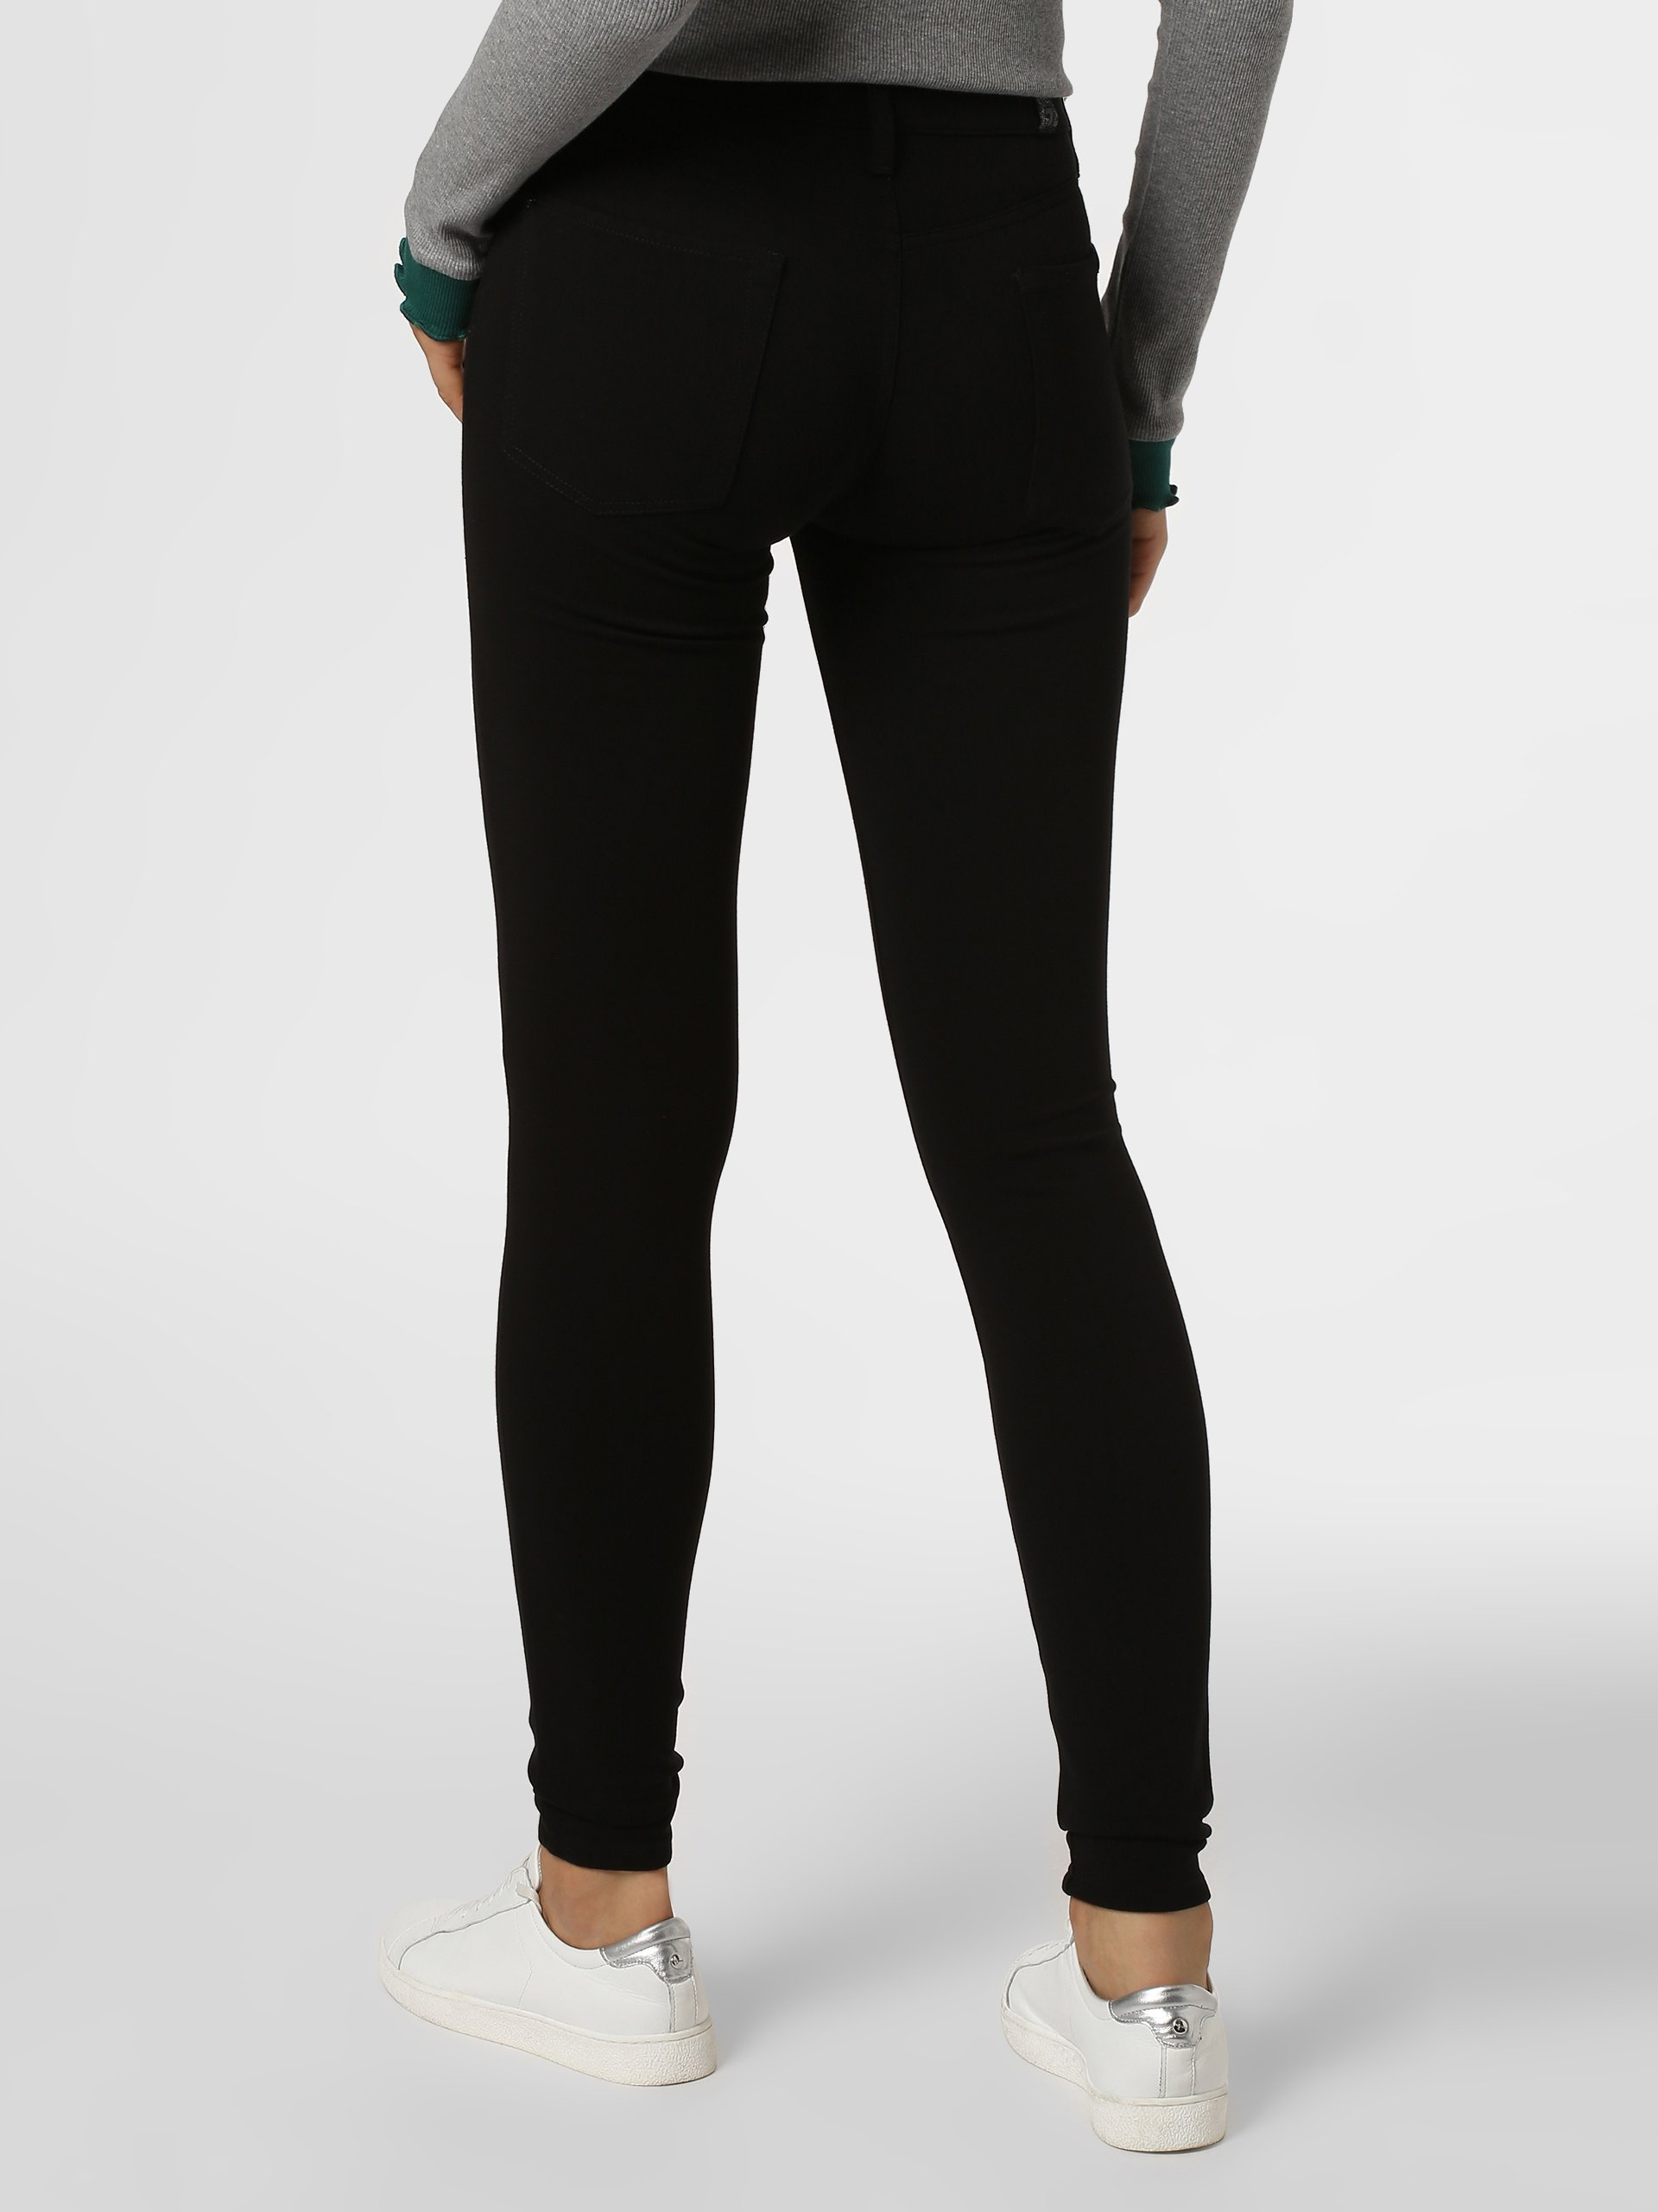 7 For All Mankind Damen Leggings - The Skinny